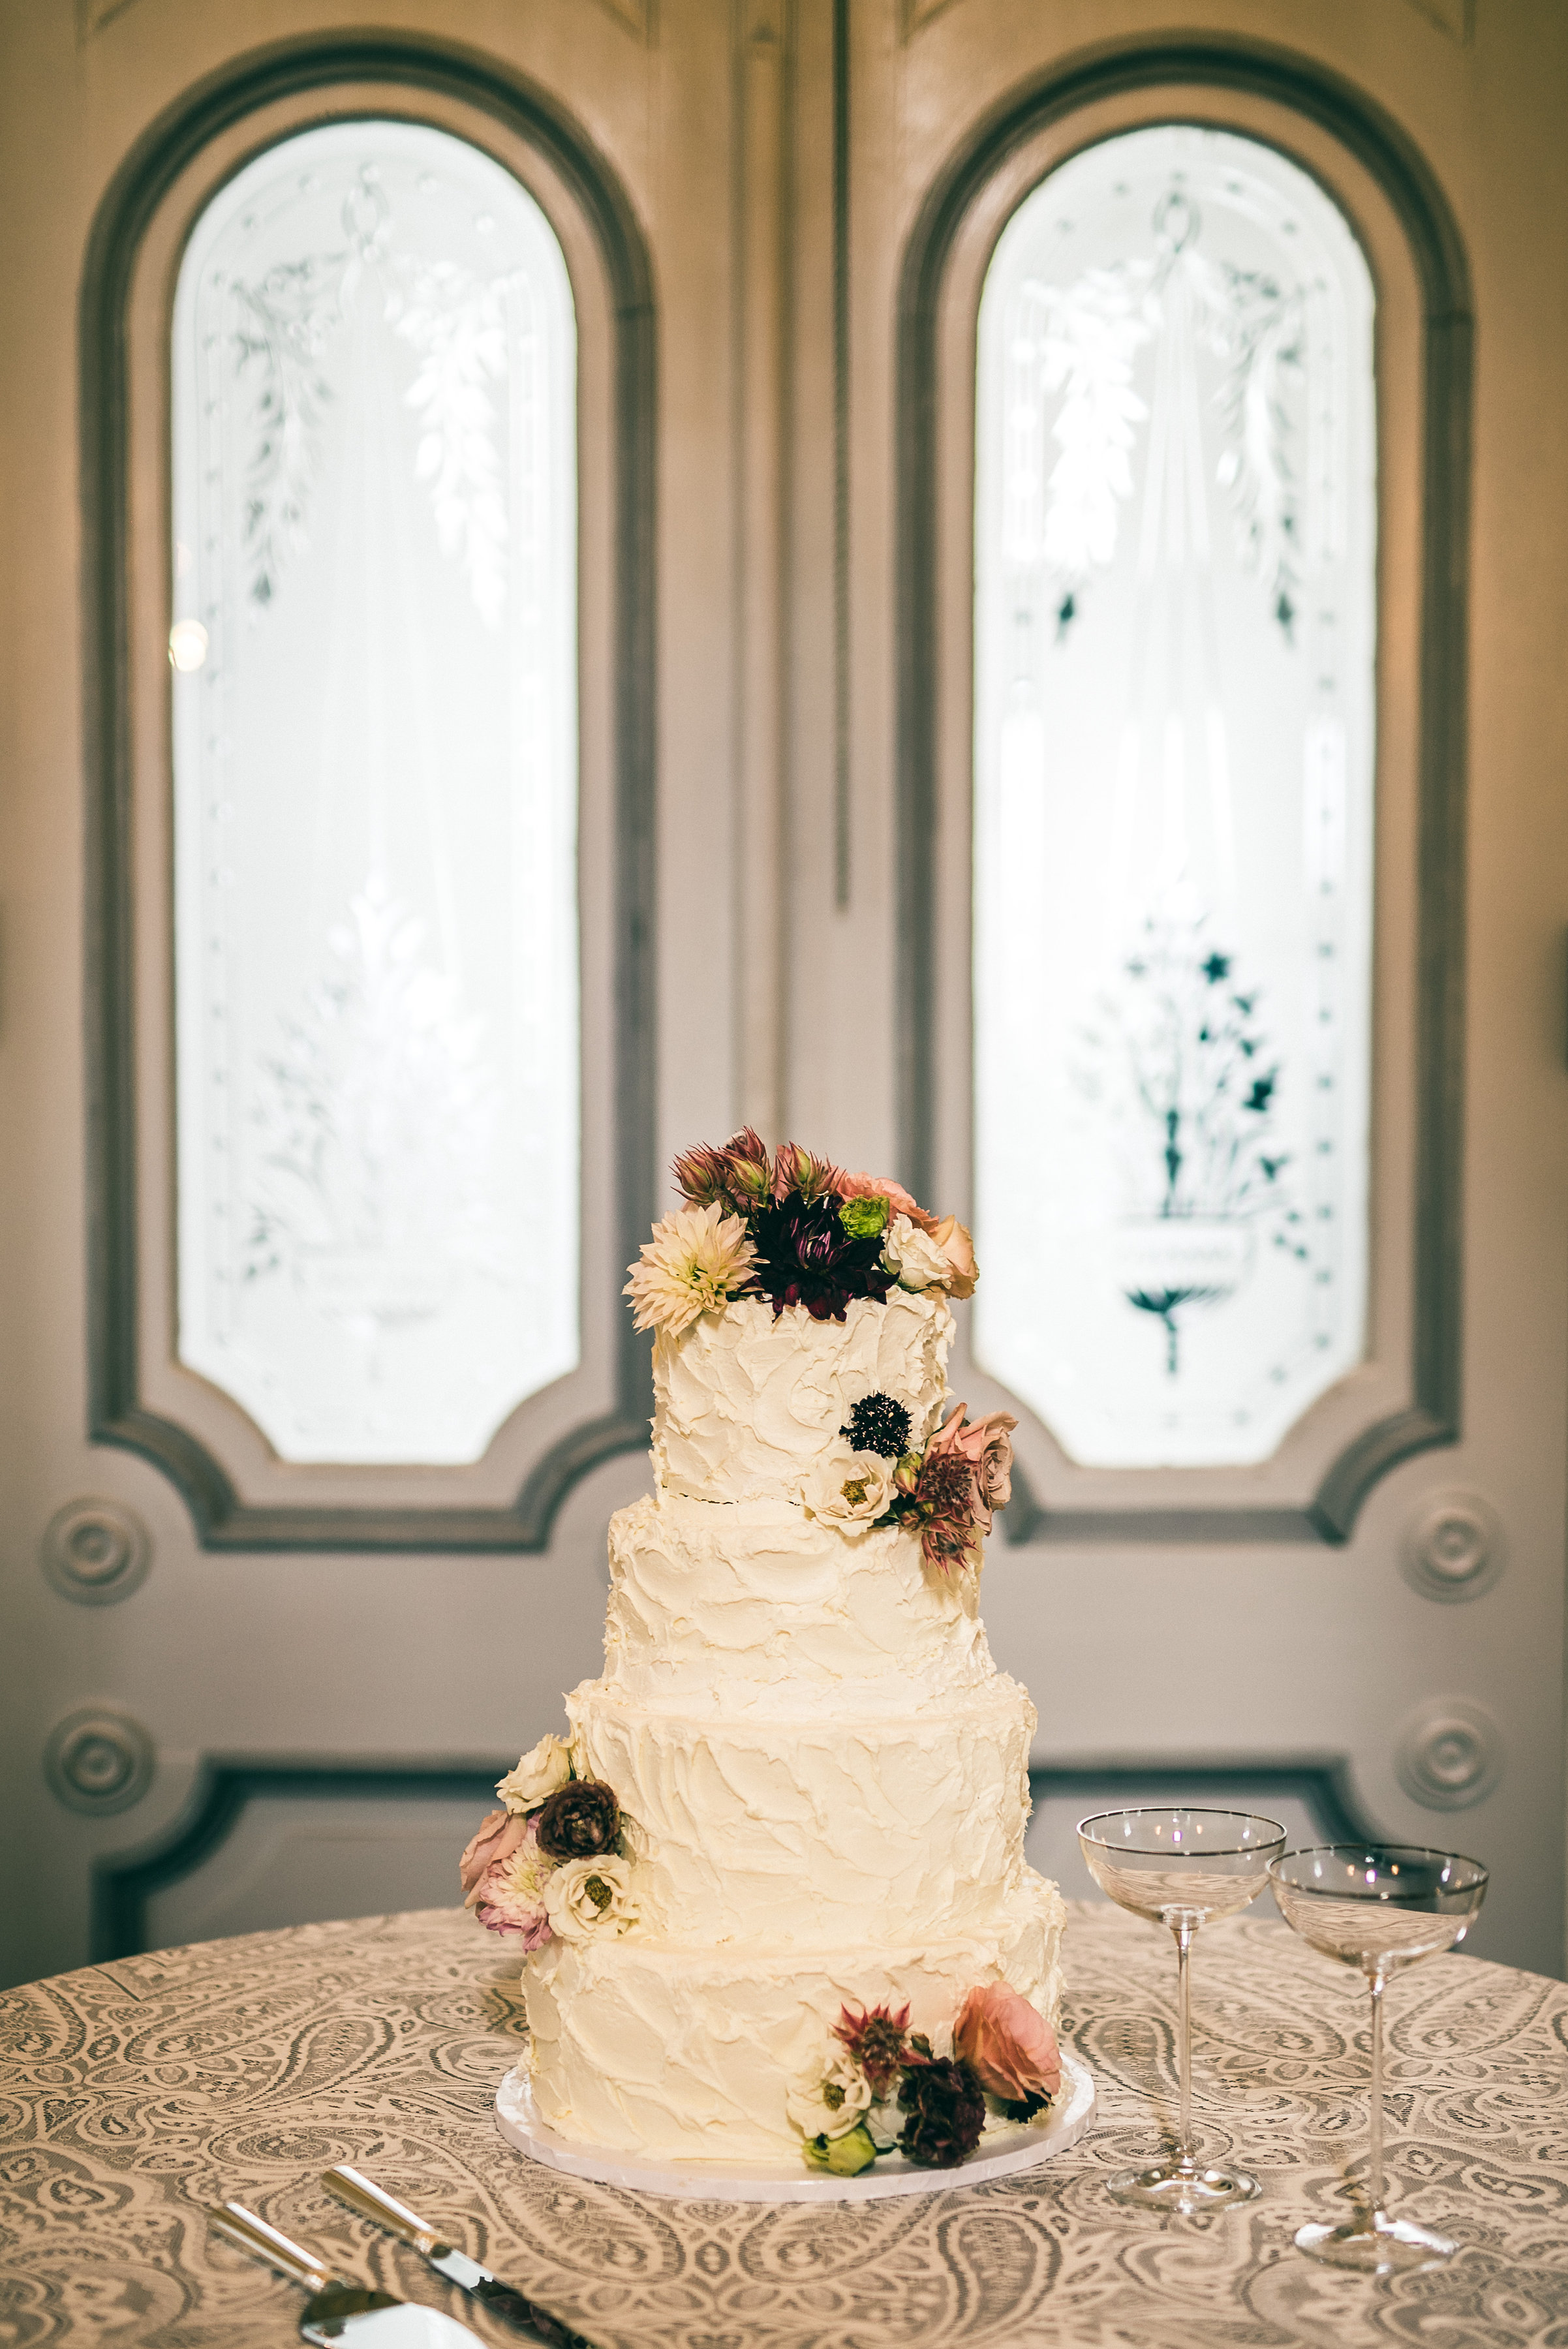 Bowerbird Flowers Durham Chapel Hill Raleigh weddings floral design florist